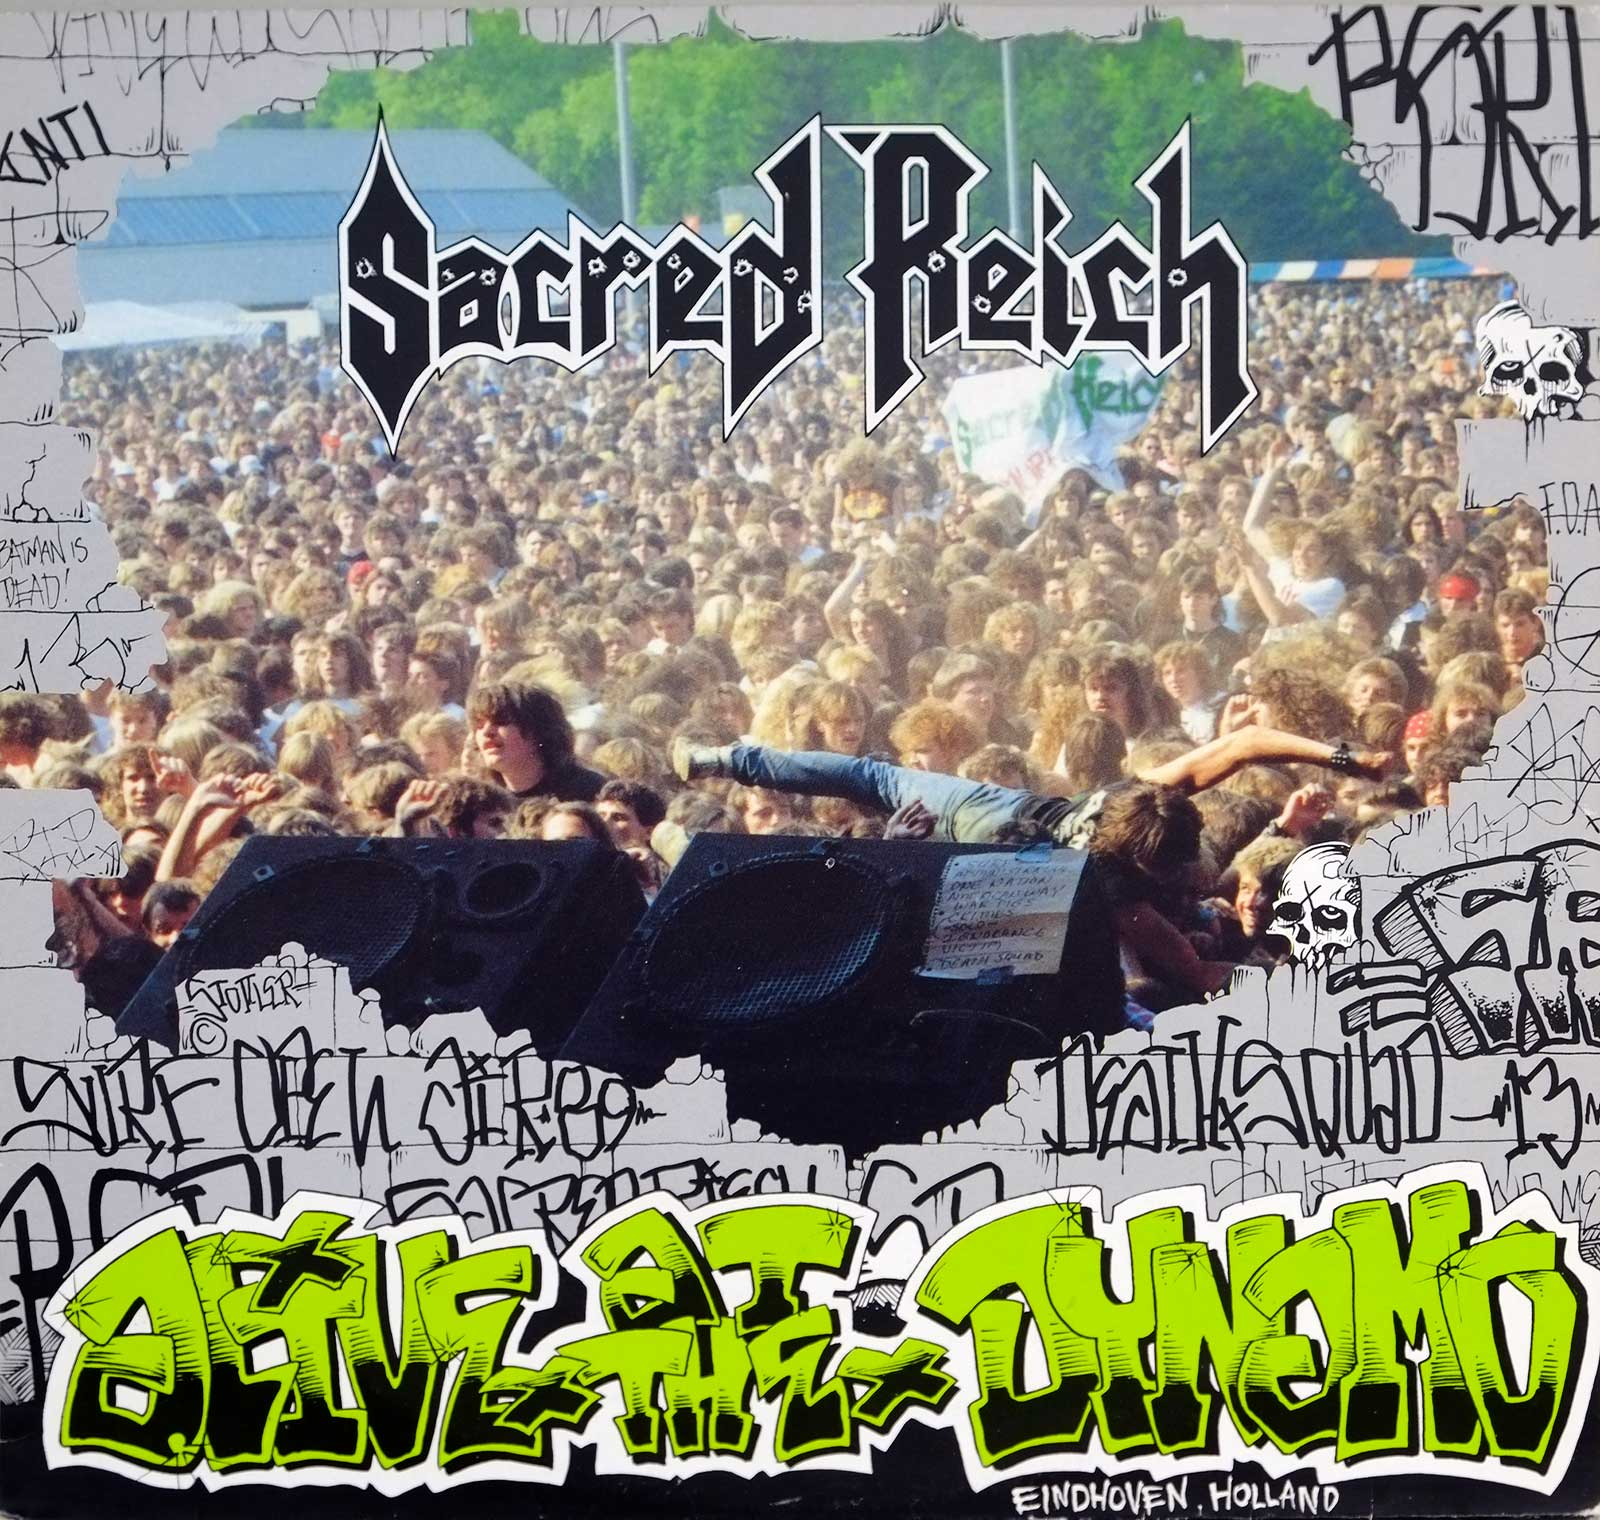 large photo of the album front cover of: SACRED REICH Alive Dynamo